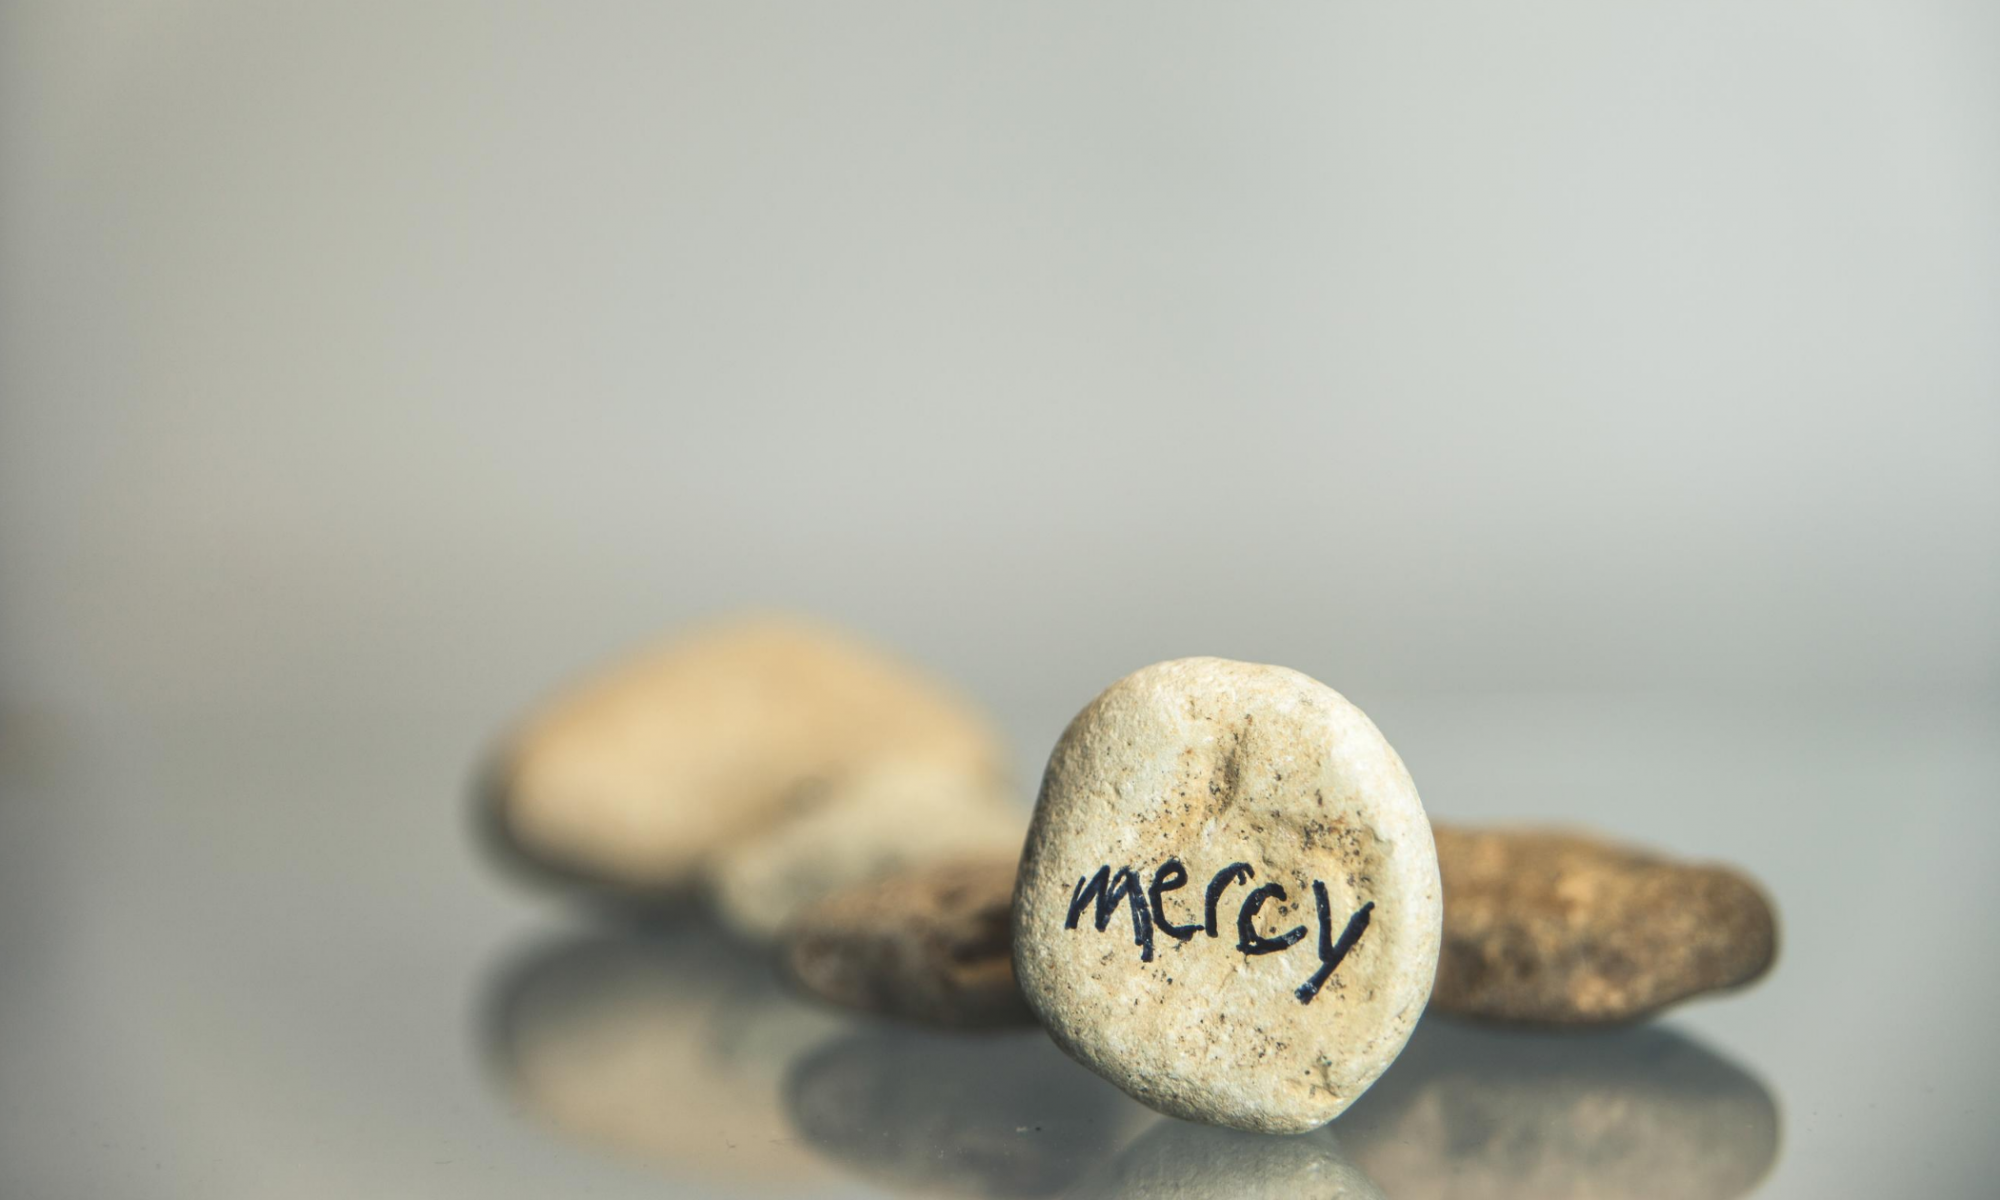 Mercy comes directly from the heart and character of God